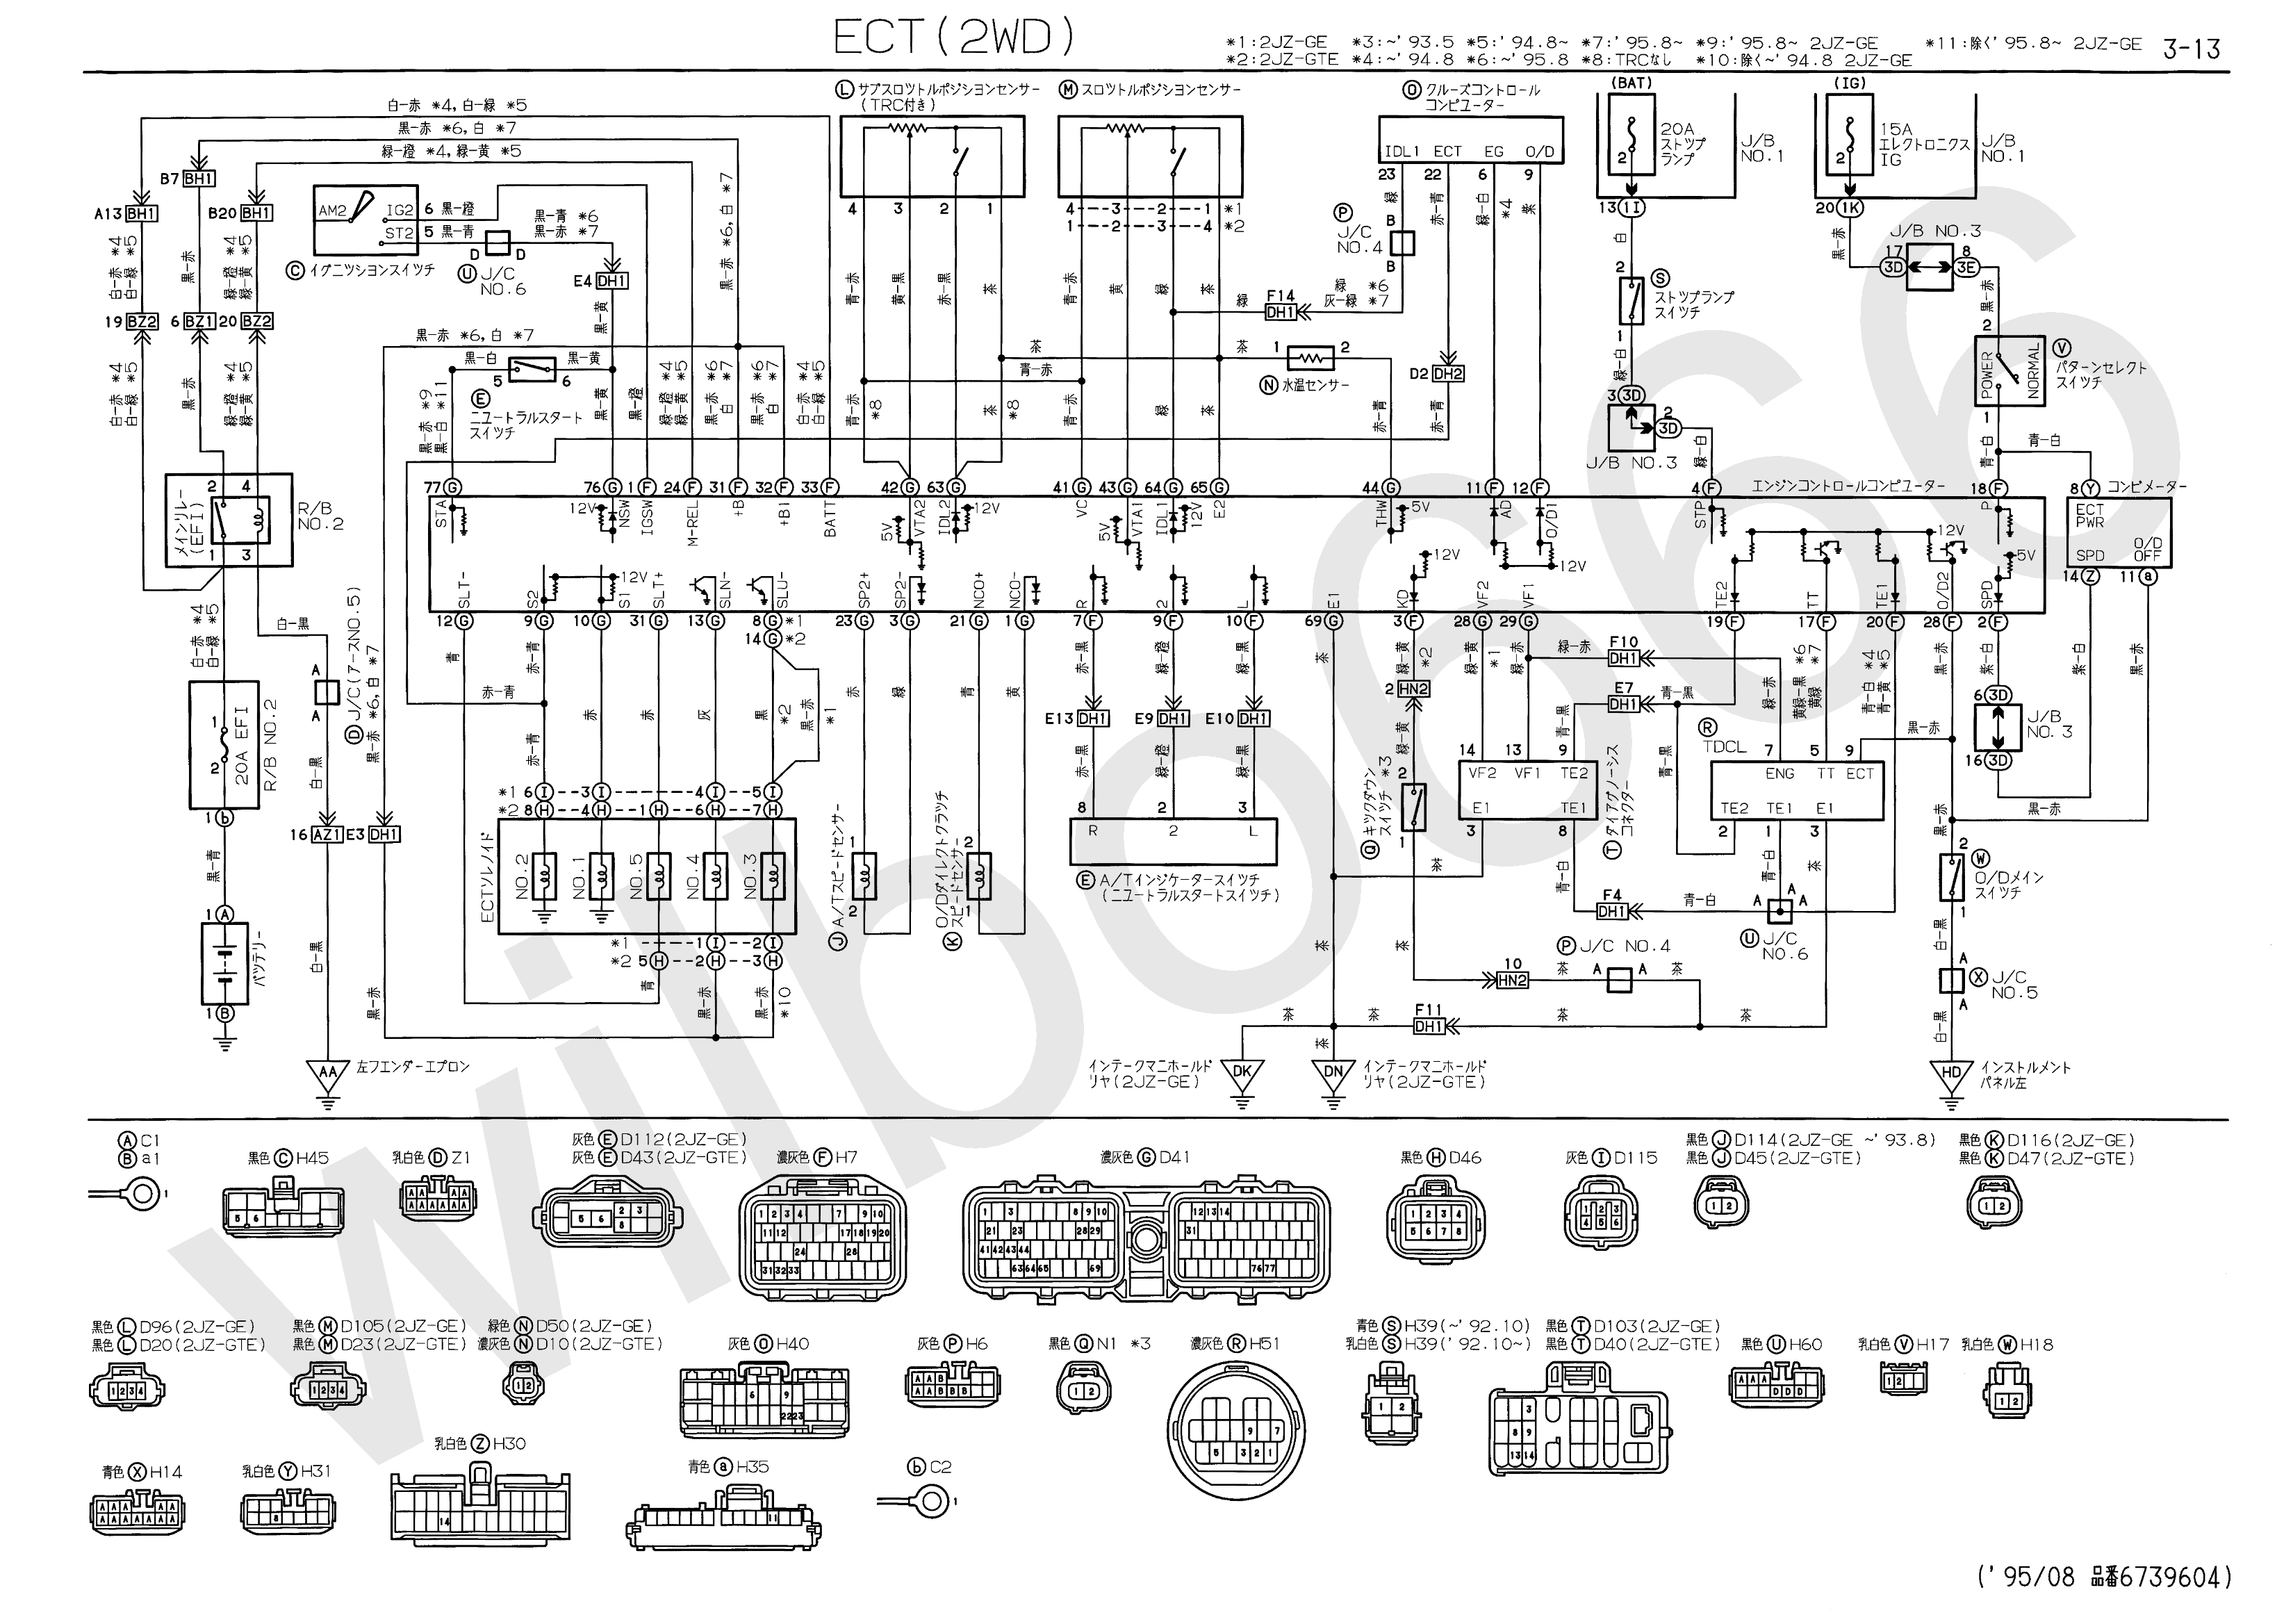 Wilbo666 2jz Gte Jzs147 Aristo Engine Wiring Outlet Switch Wiring1 Diagram Diagosis Toyota Nsw Sta